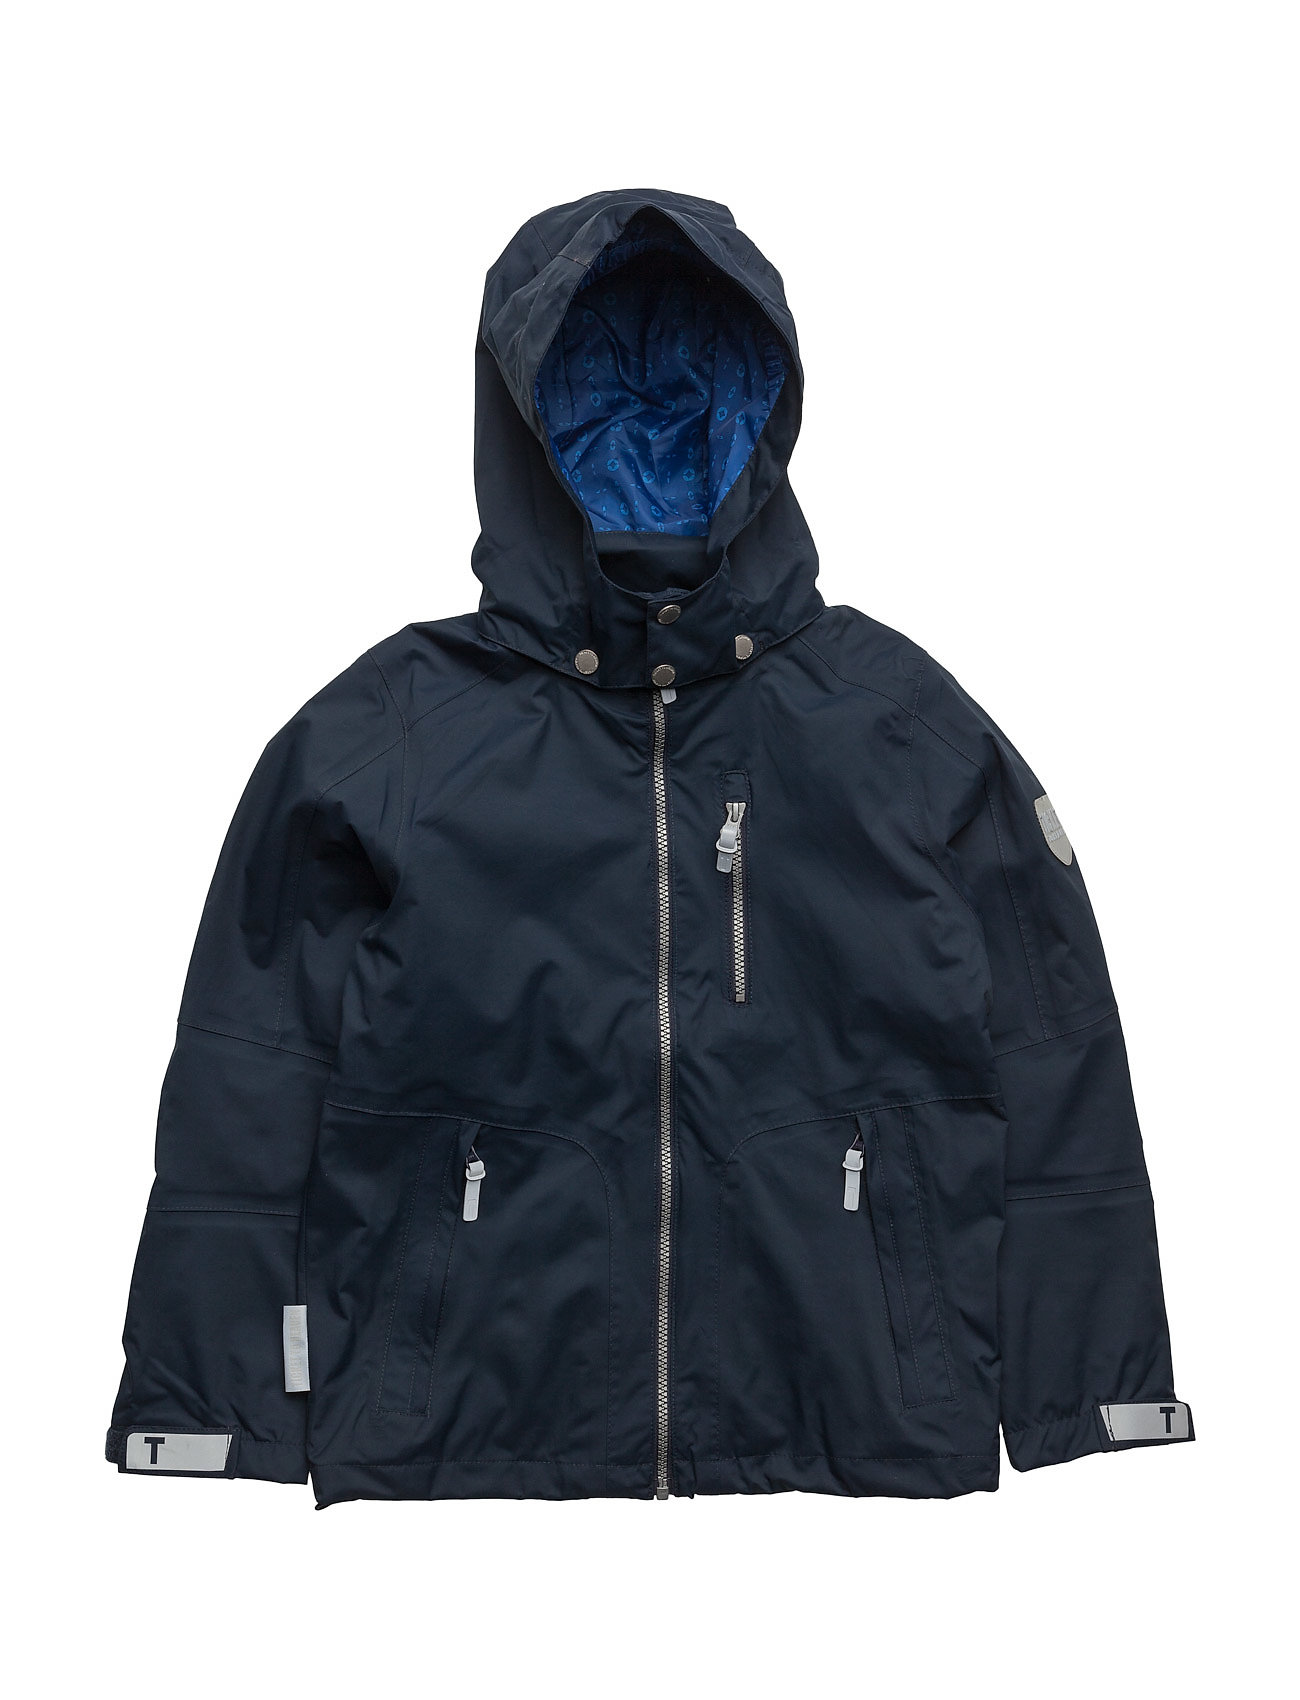 Jacket Kethil With Detachable Hood Ticket to Heaven Overtøj til Drenge i